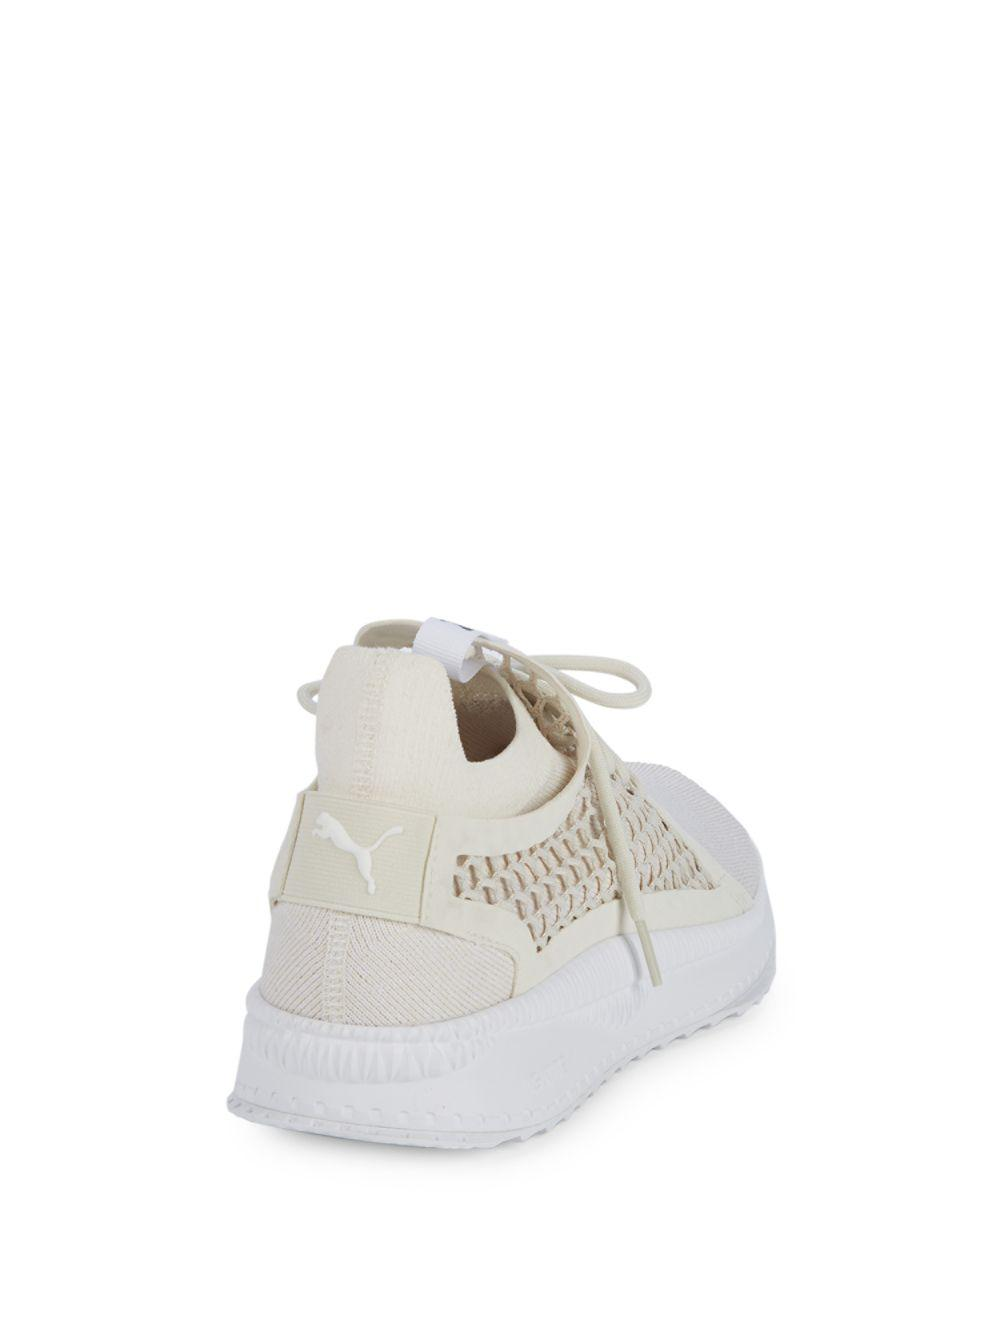 05089577f62 Lyst - PUMA Perforated Lace-up Sneakers in White